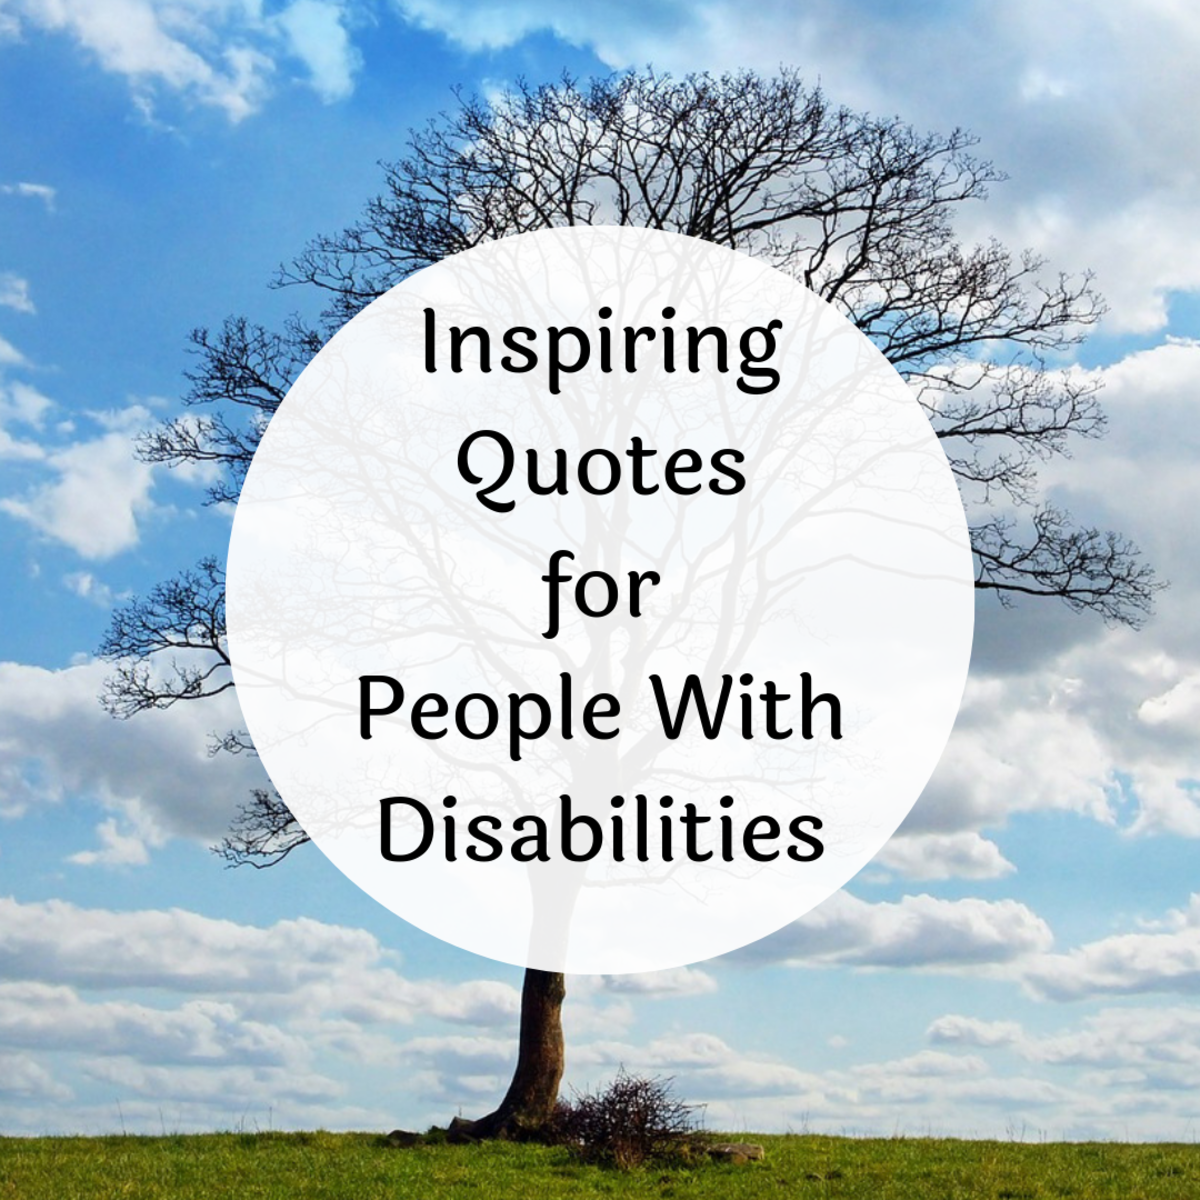 Explore some inspirational quotes about, for and from people with disabilities.